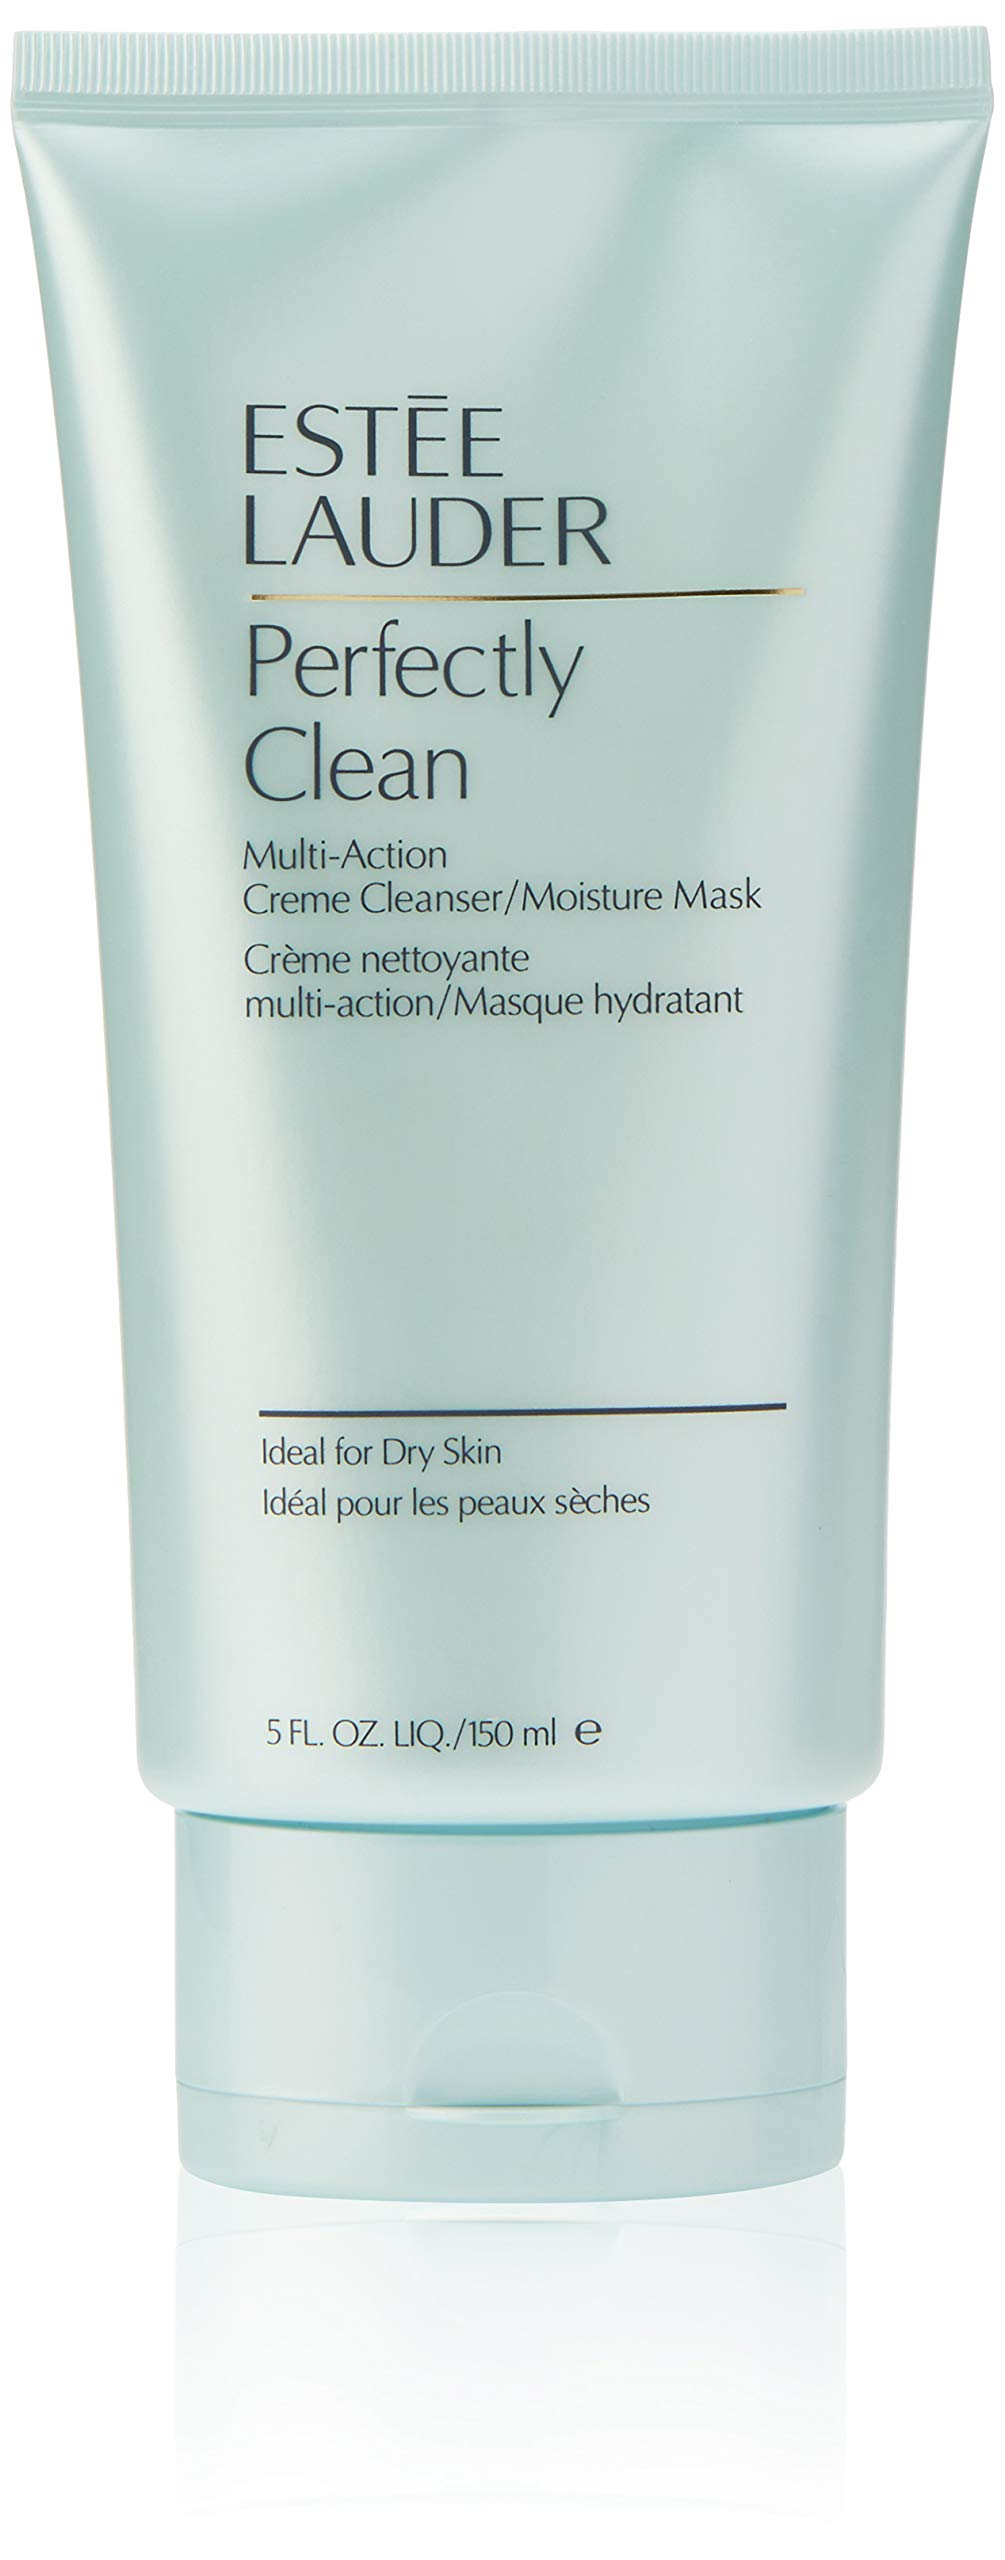 Estee Lauder | Perfectly Clean  | Multi-Action Crème Cleanser/Moisture Mask | Conditions  | Nourishes | Dermatologist and Ophthalmologist Tested | 5 oz